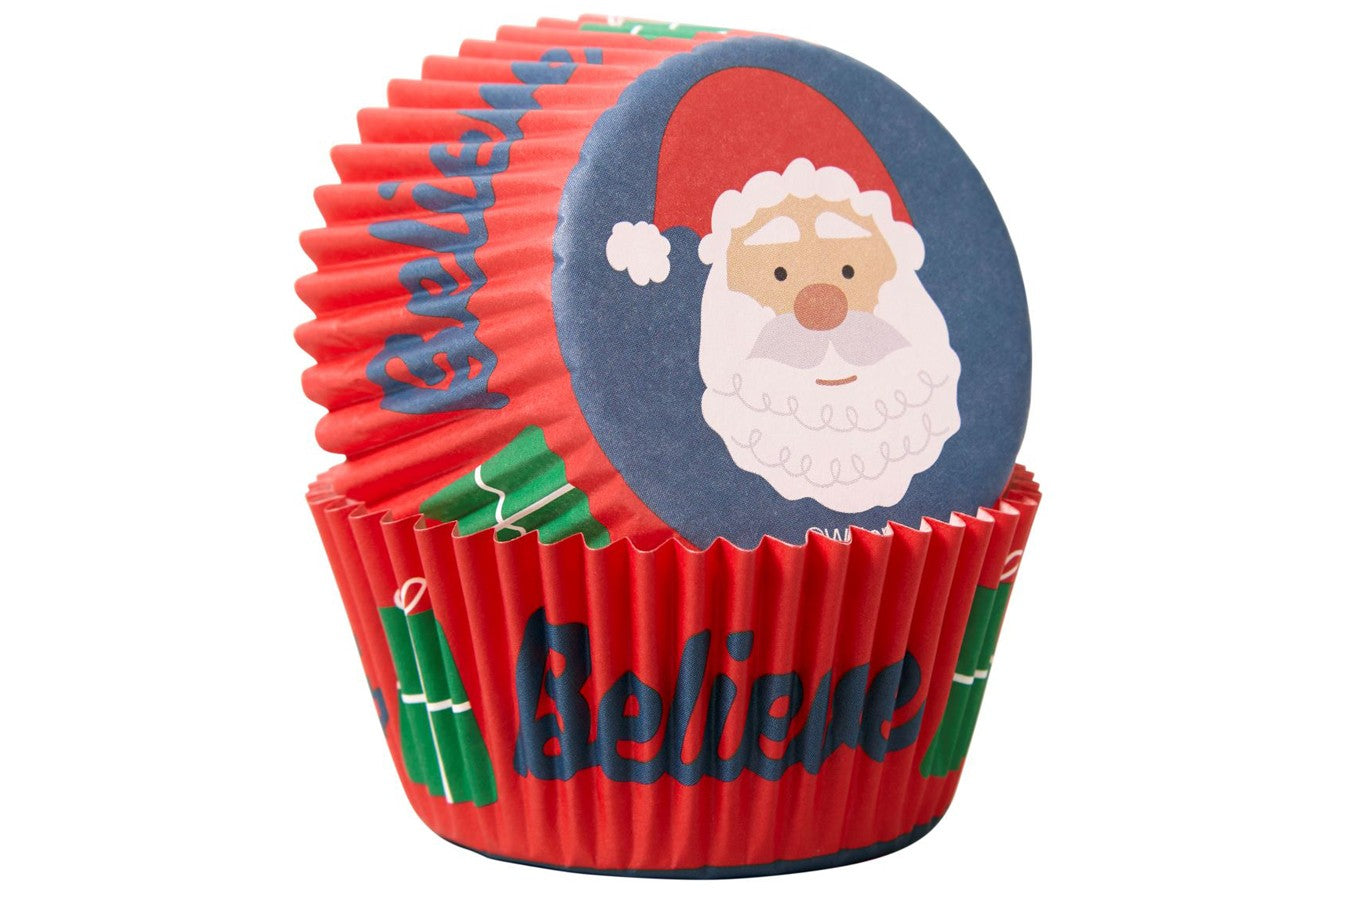 Wilton : Standard Baking Cases - Believe Santa - Pack of 75